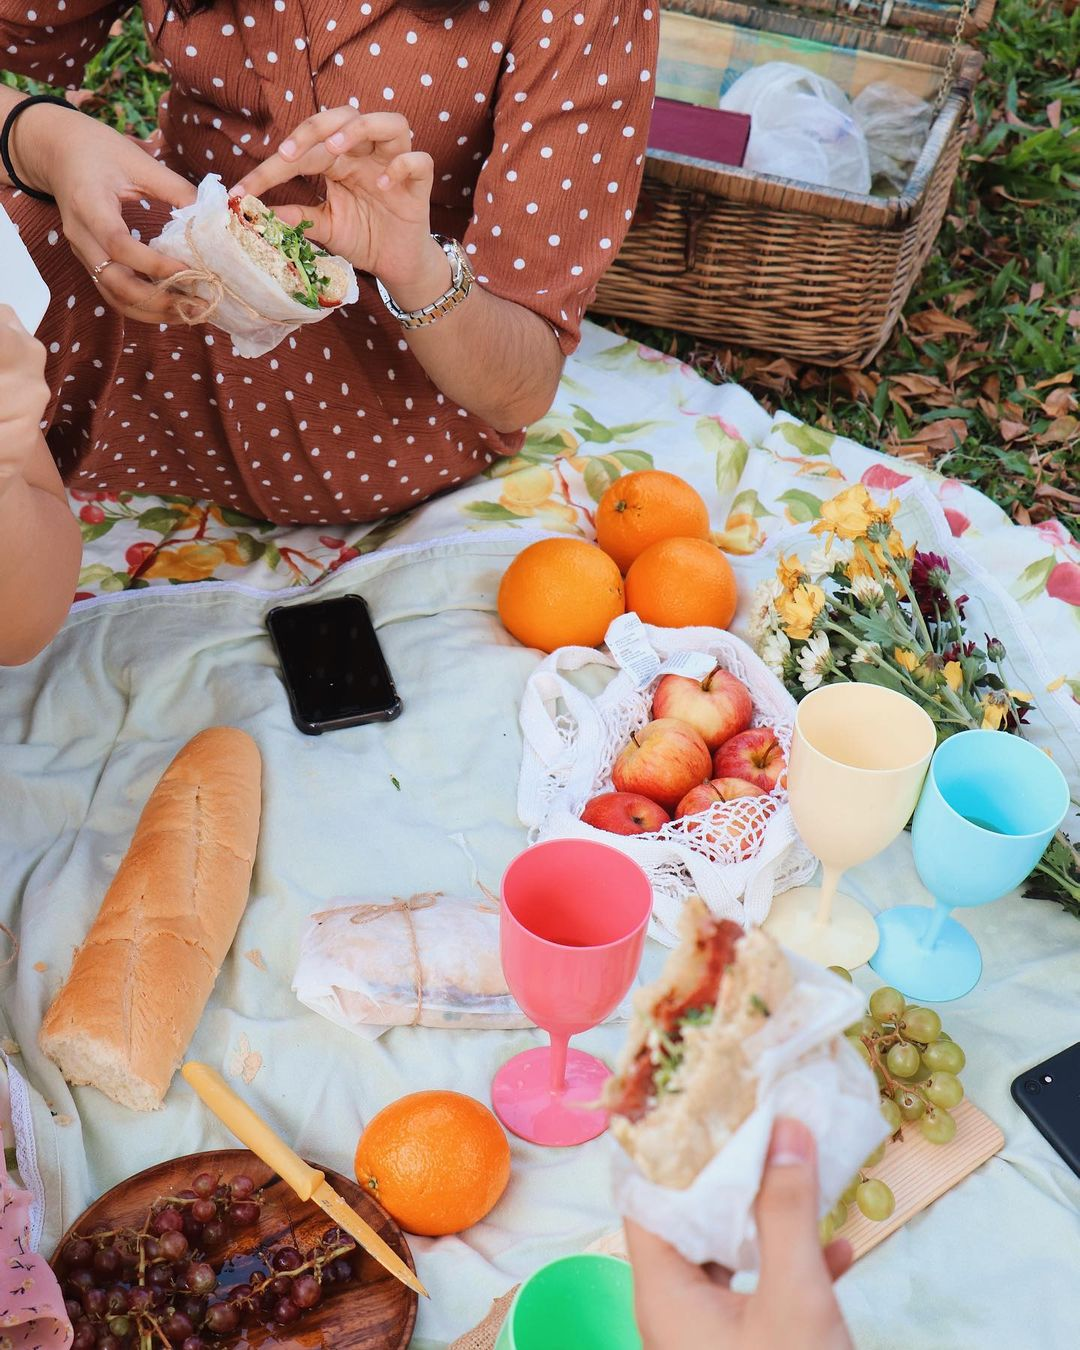 Girls sitting on a picnic blanket and eating